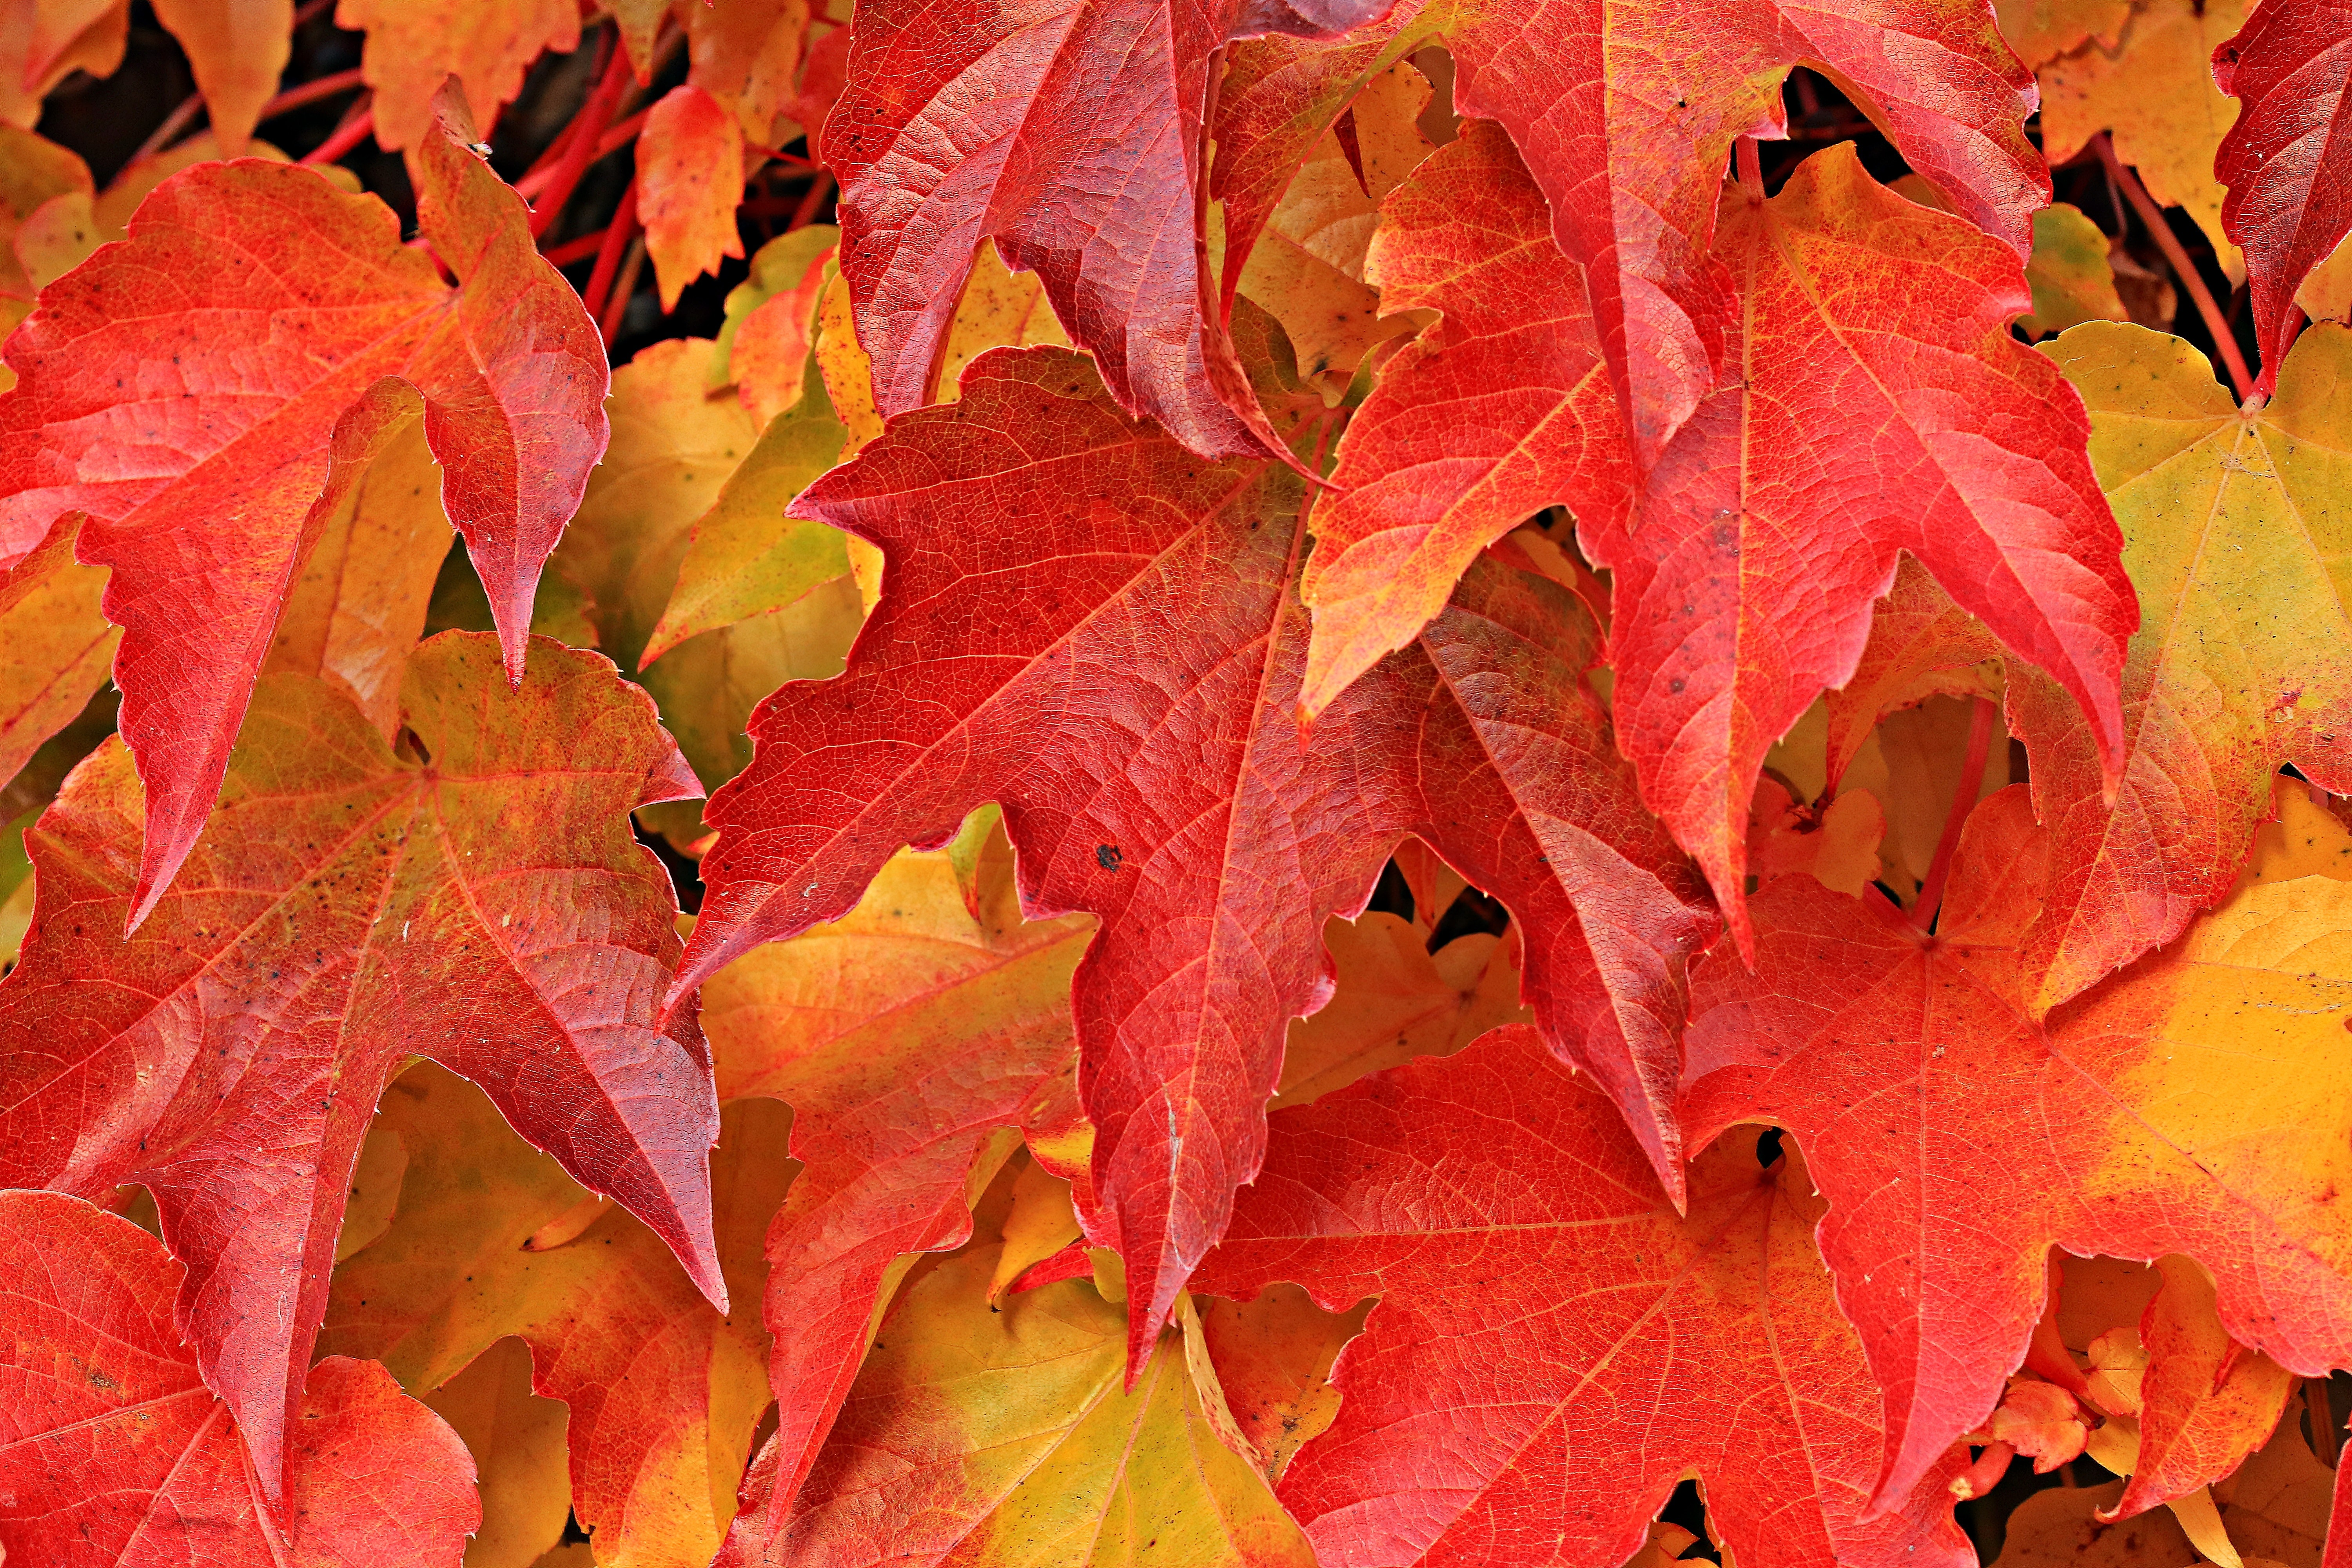 Labels Red Autumn Leaves Photography Hd Wallpapers For: 1000+ Beautiful Autumn Leaves Photos · Pexels · Free Stock